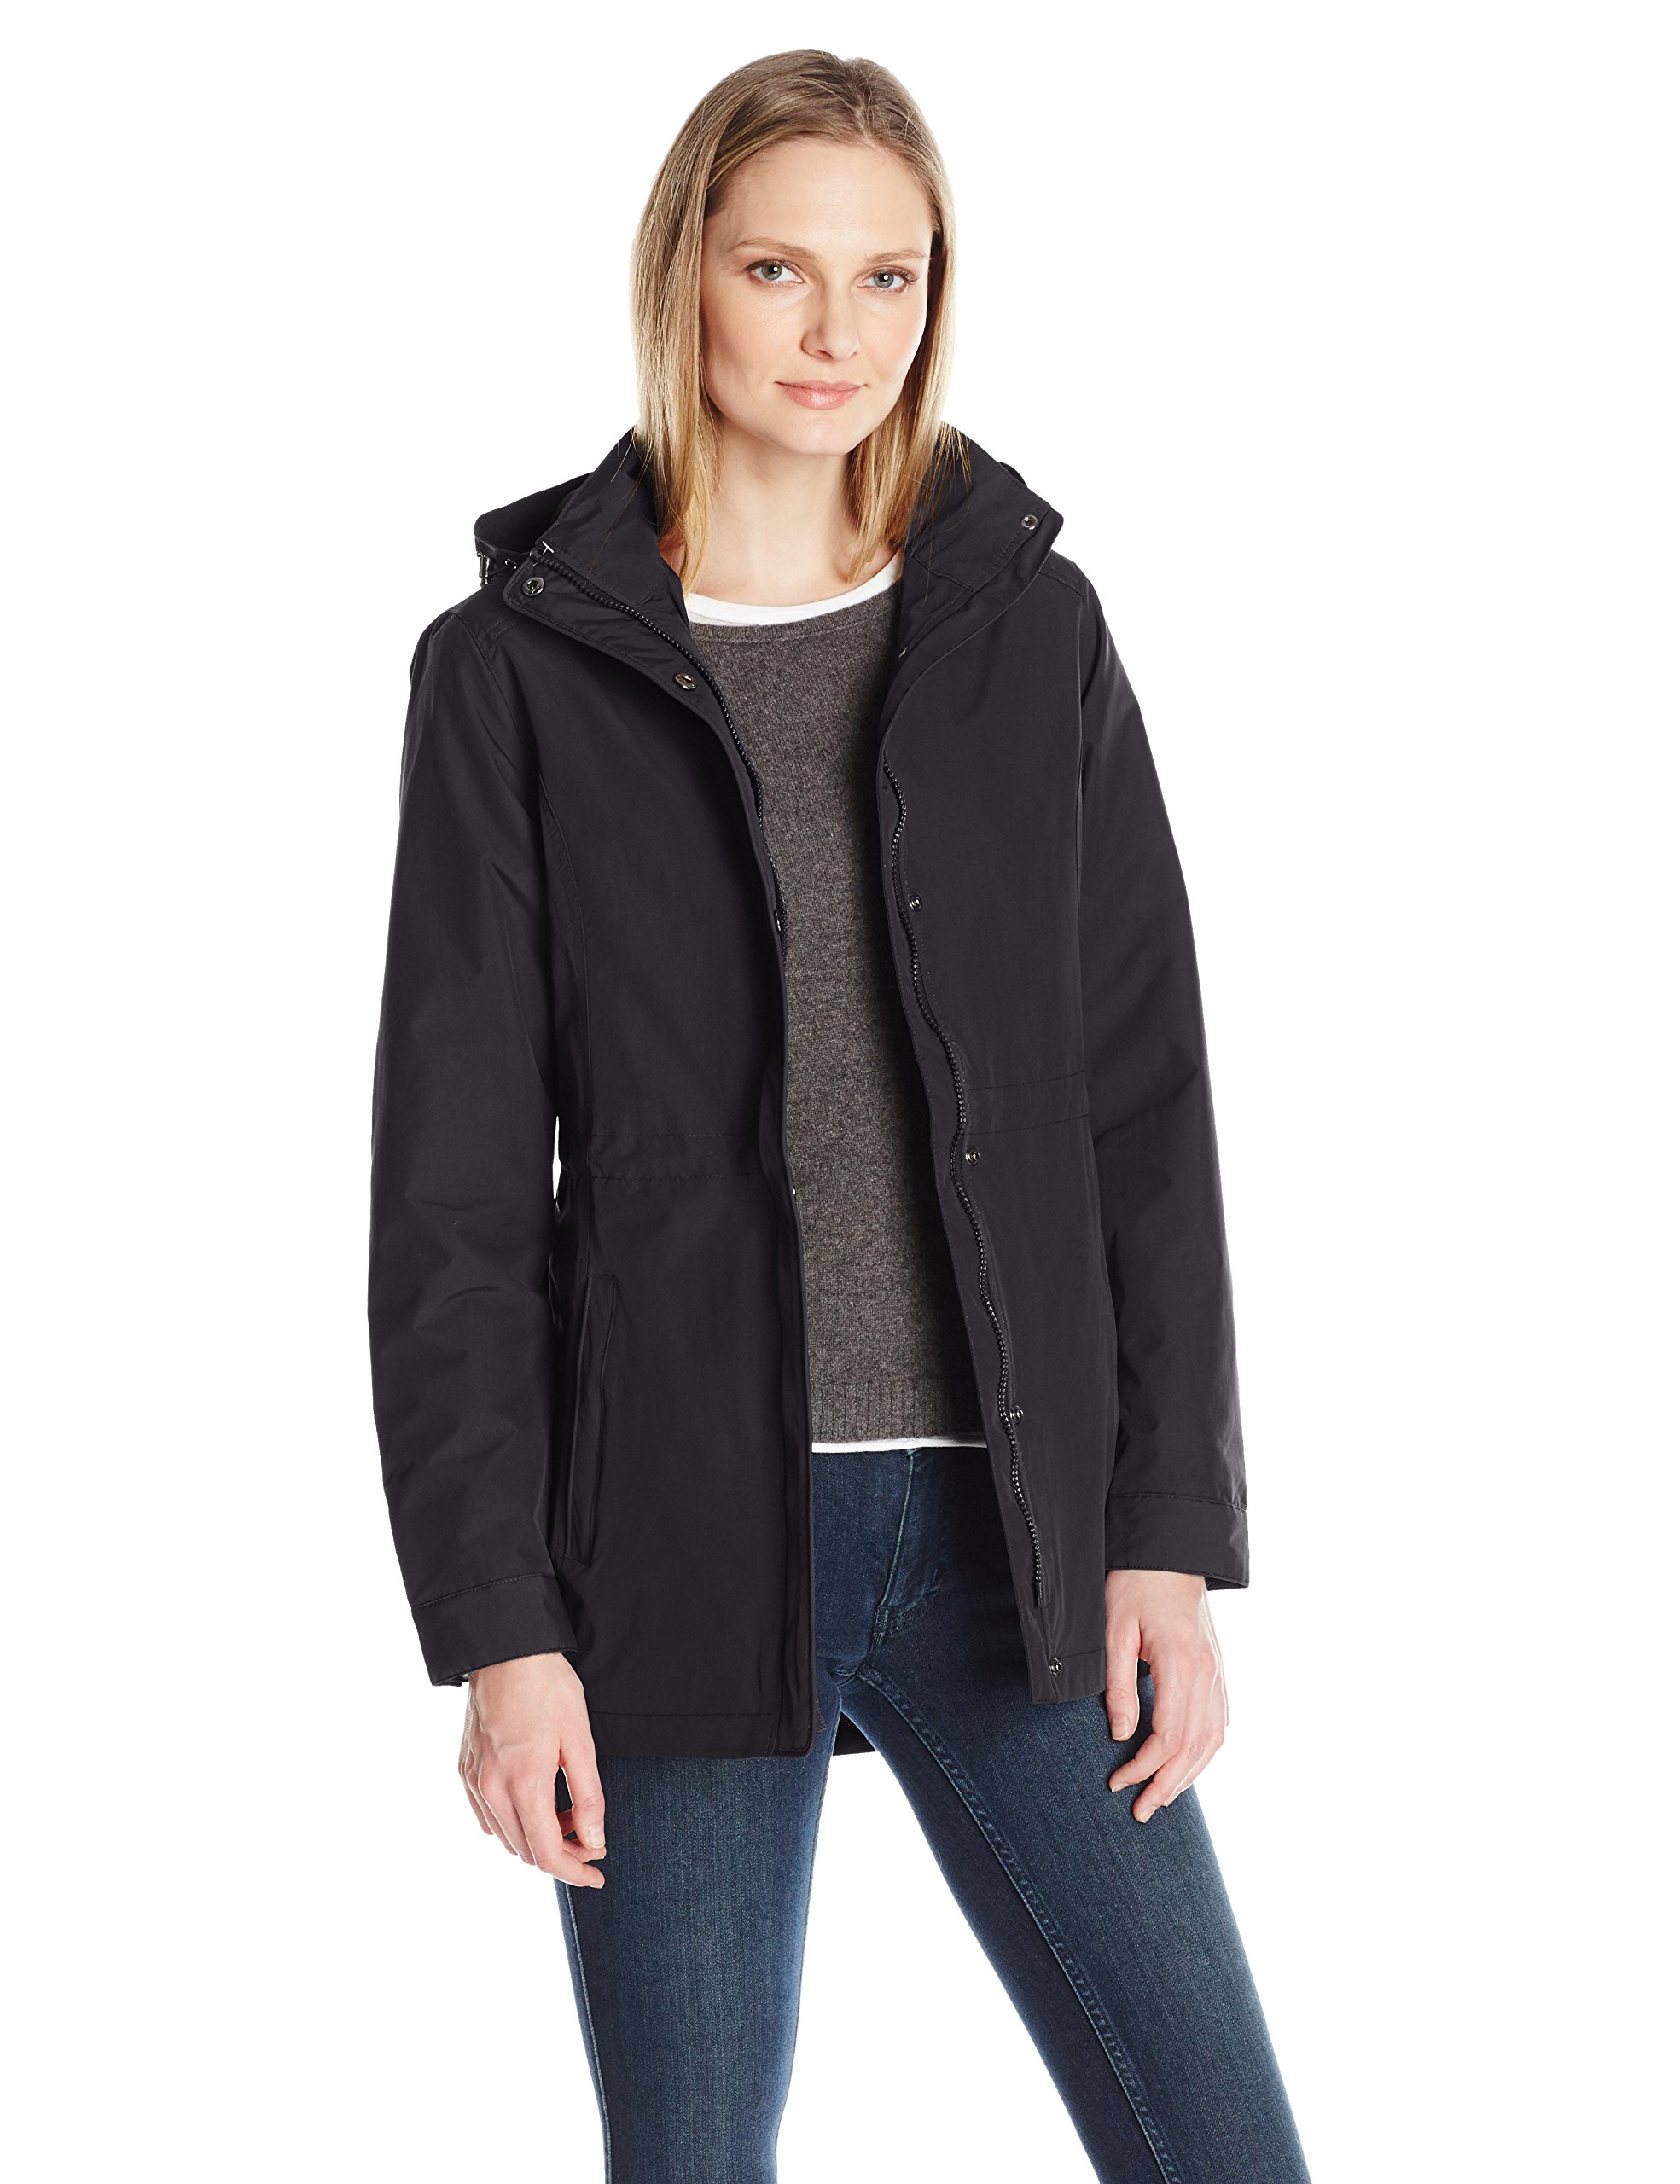 Charles River Apparel Women's Logan Wind and Water Resistant Drop Tail Jacket, Black, S